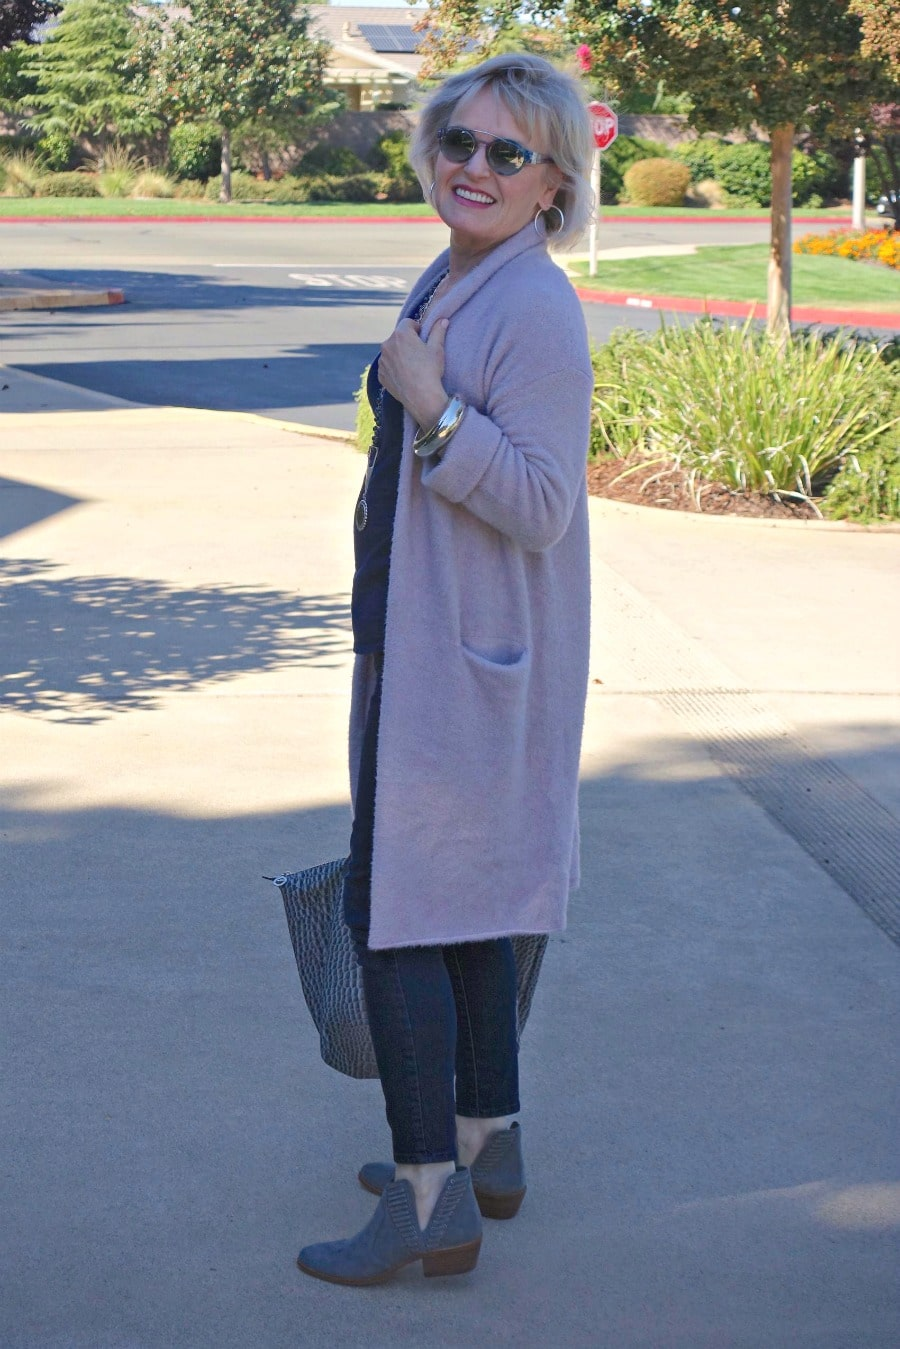 Jennifer Connolly of A Well Styled Life modeling Thornton sweater from Anthropologie